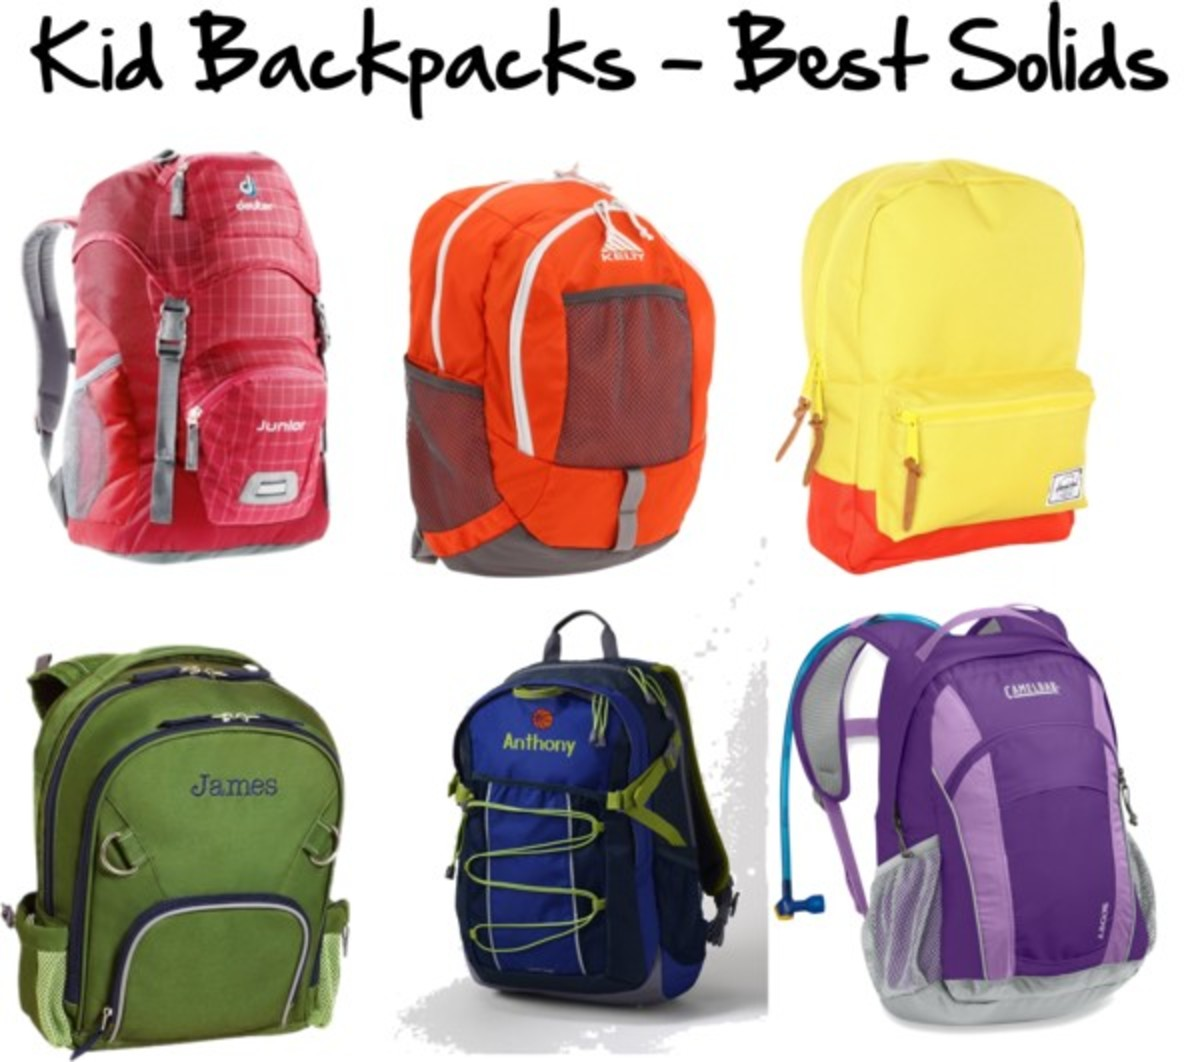 Kid Backpacks - Best Solids